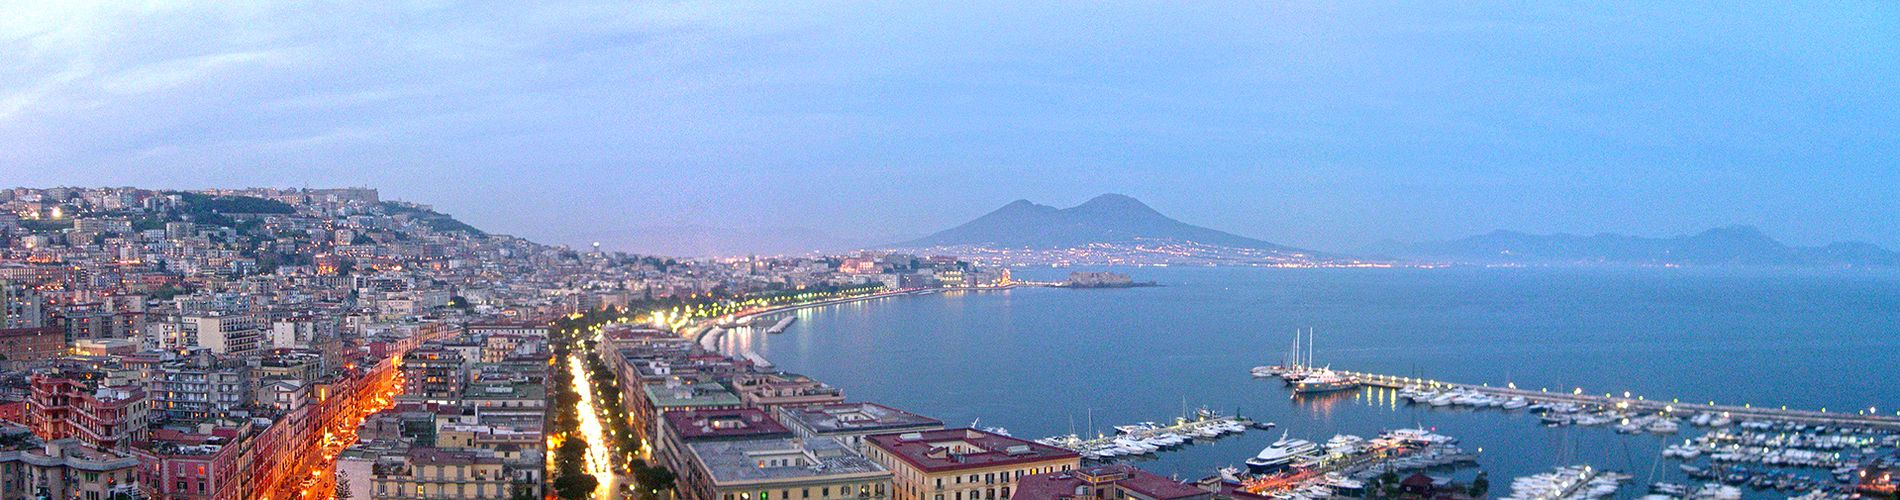 Naples Italy Home of Neapolitan Pizza